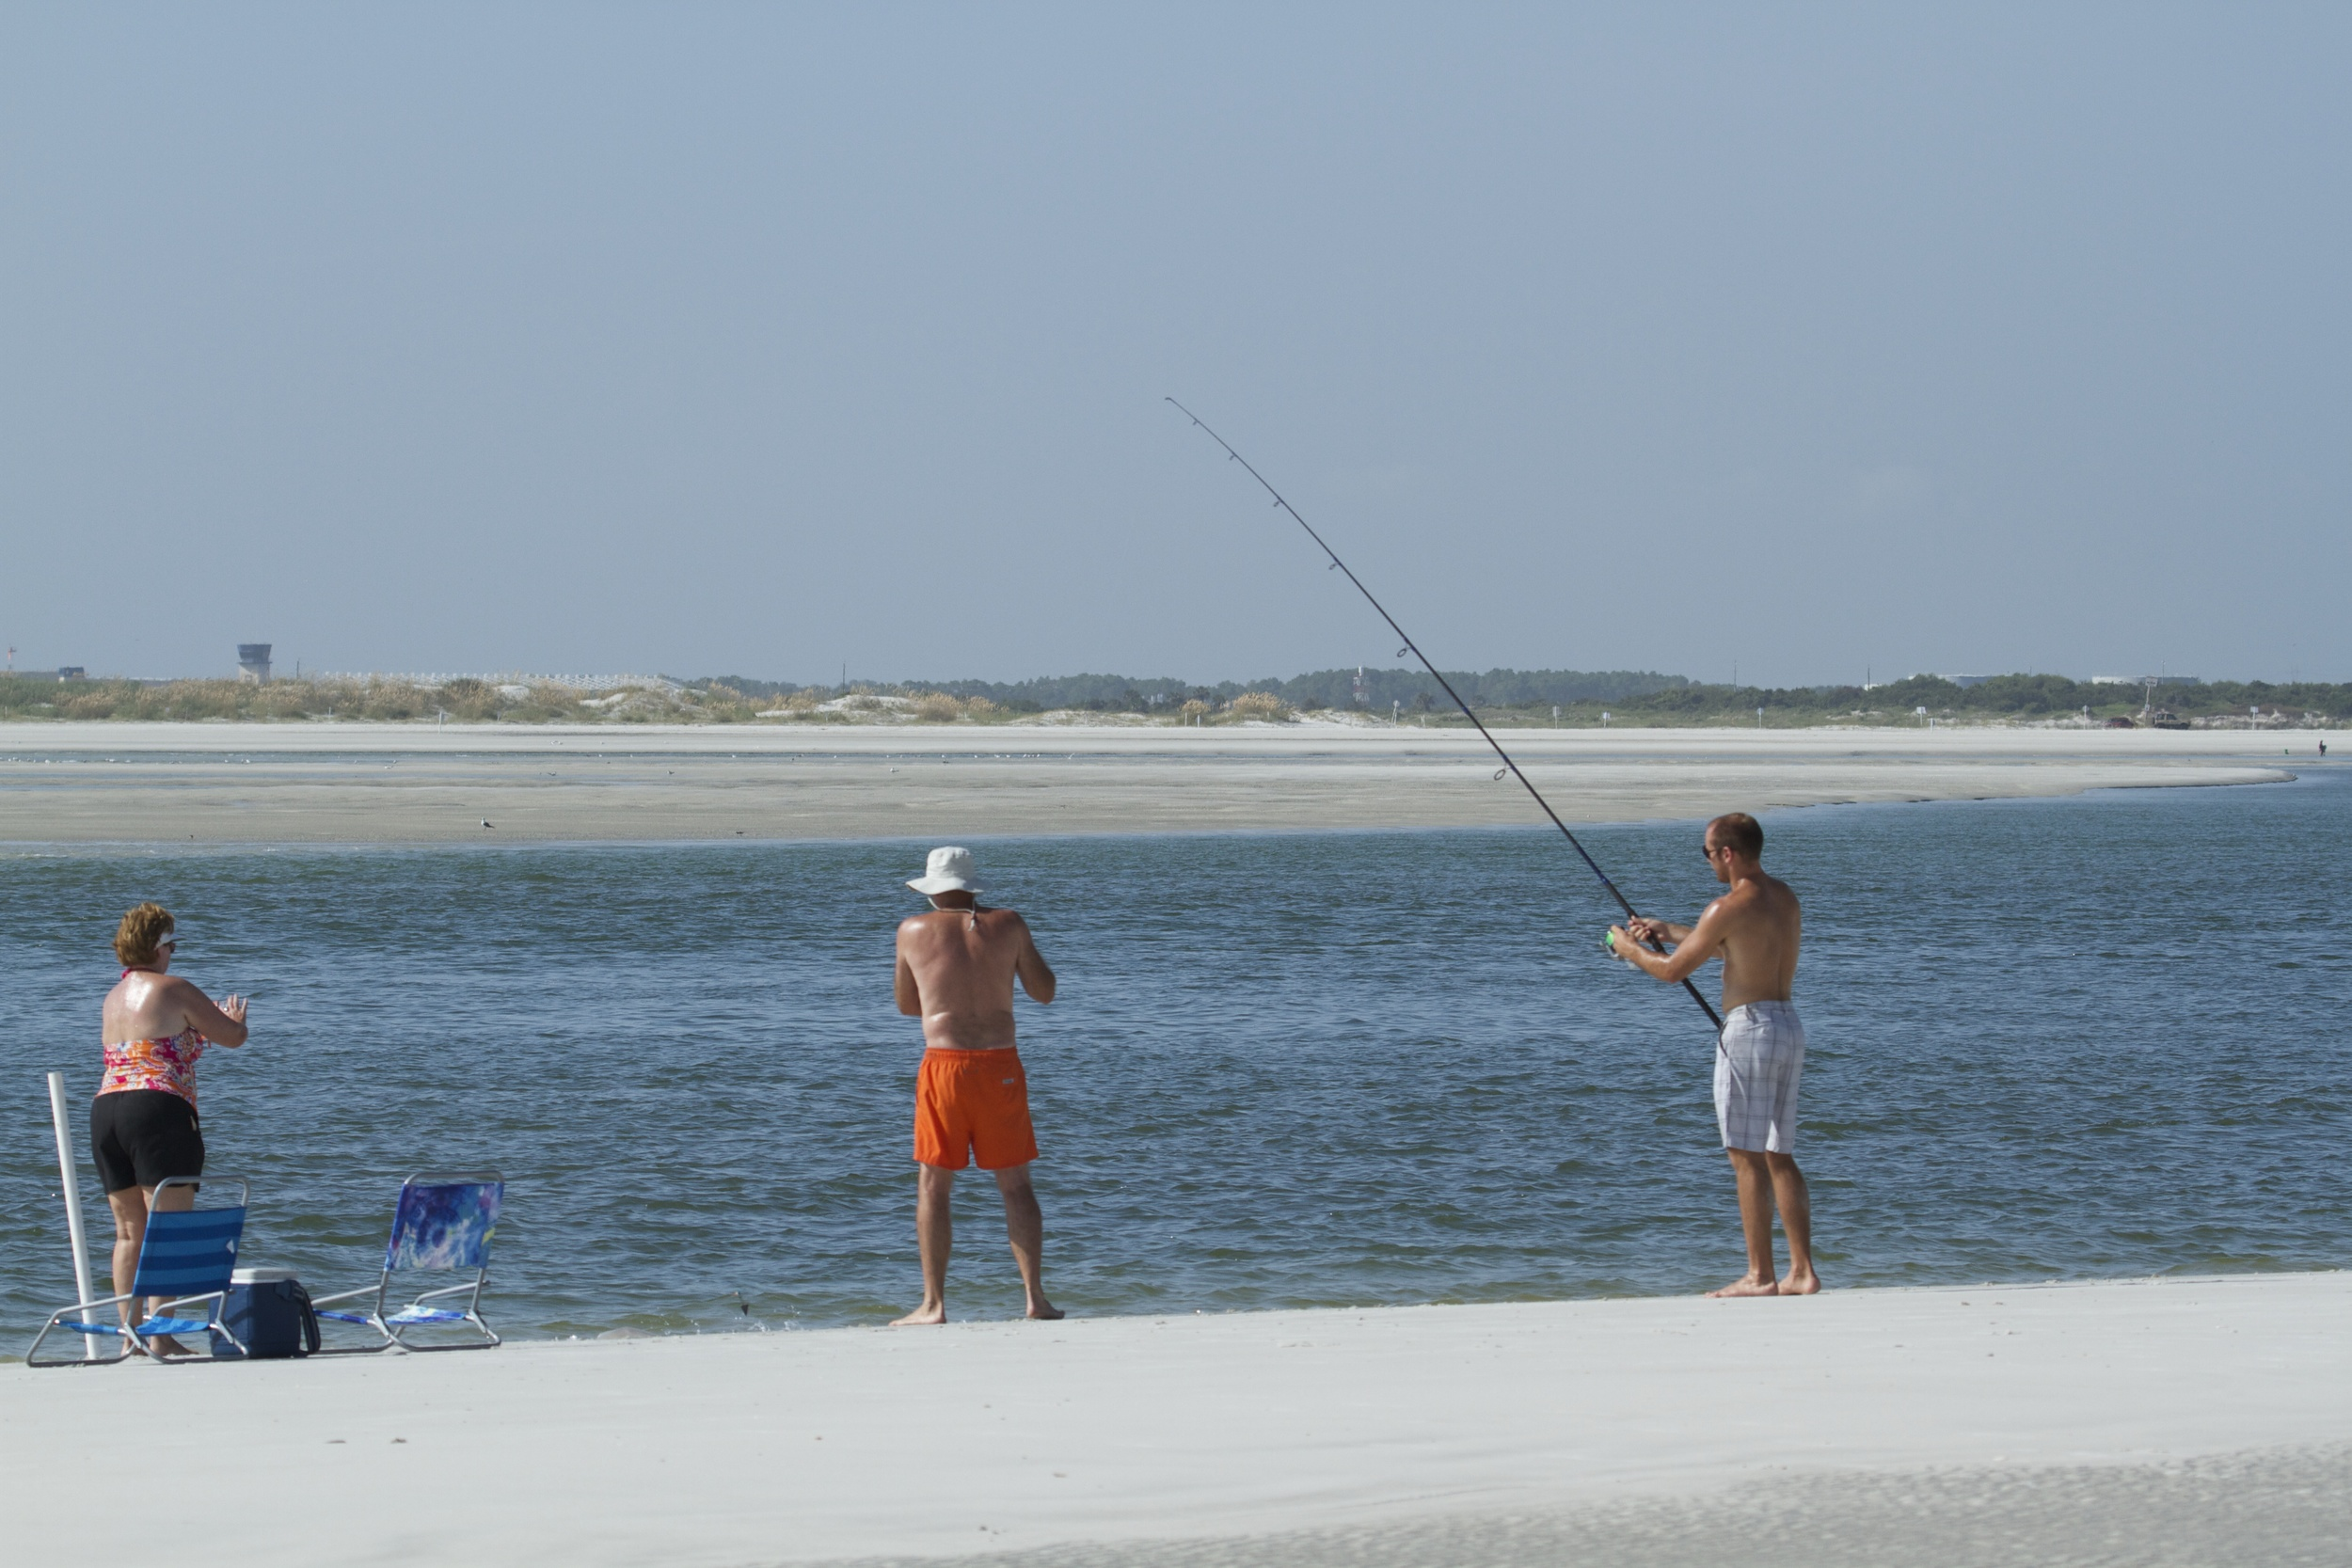 An Ohio family enjoys some surf fishing..they were the only other two legged creatures I saw on the beach.